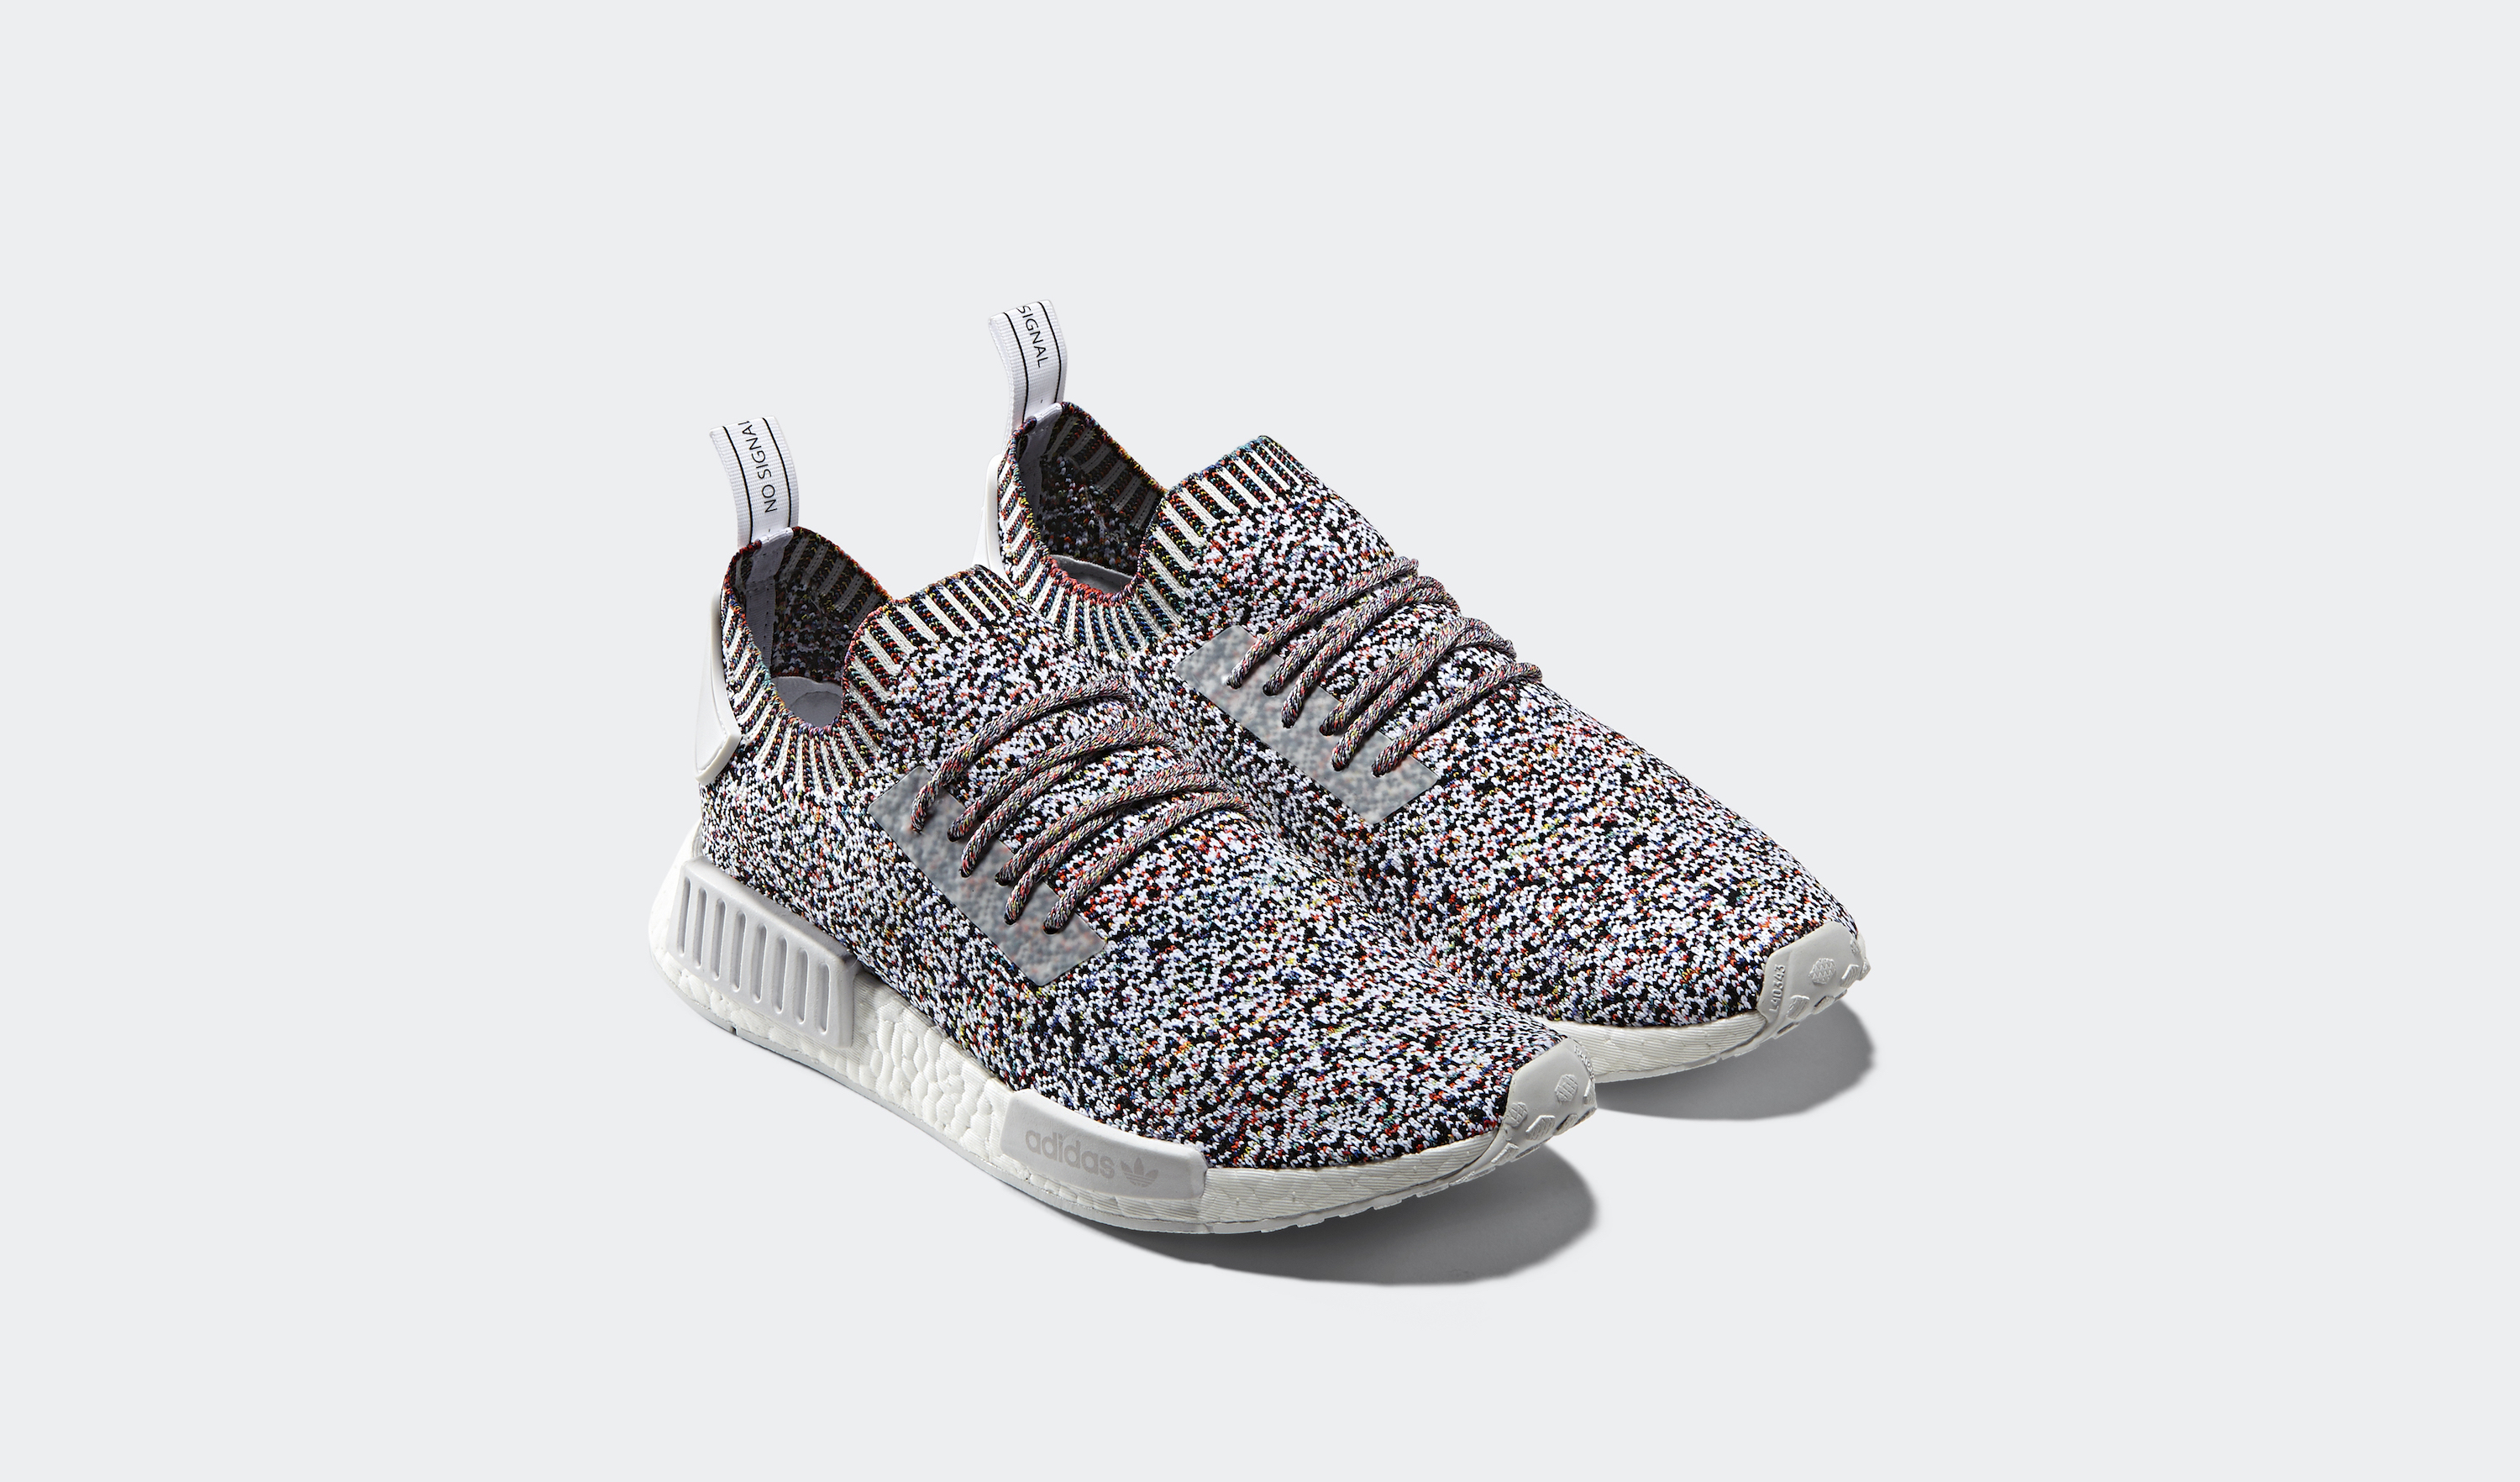 adidas NMD R1 color static 2